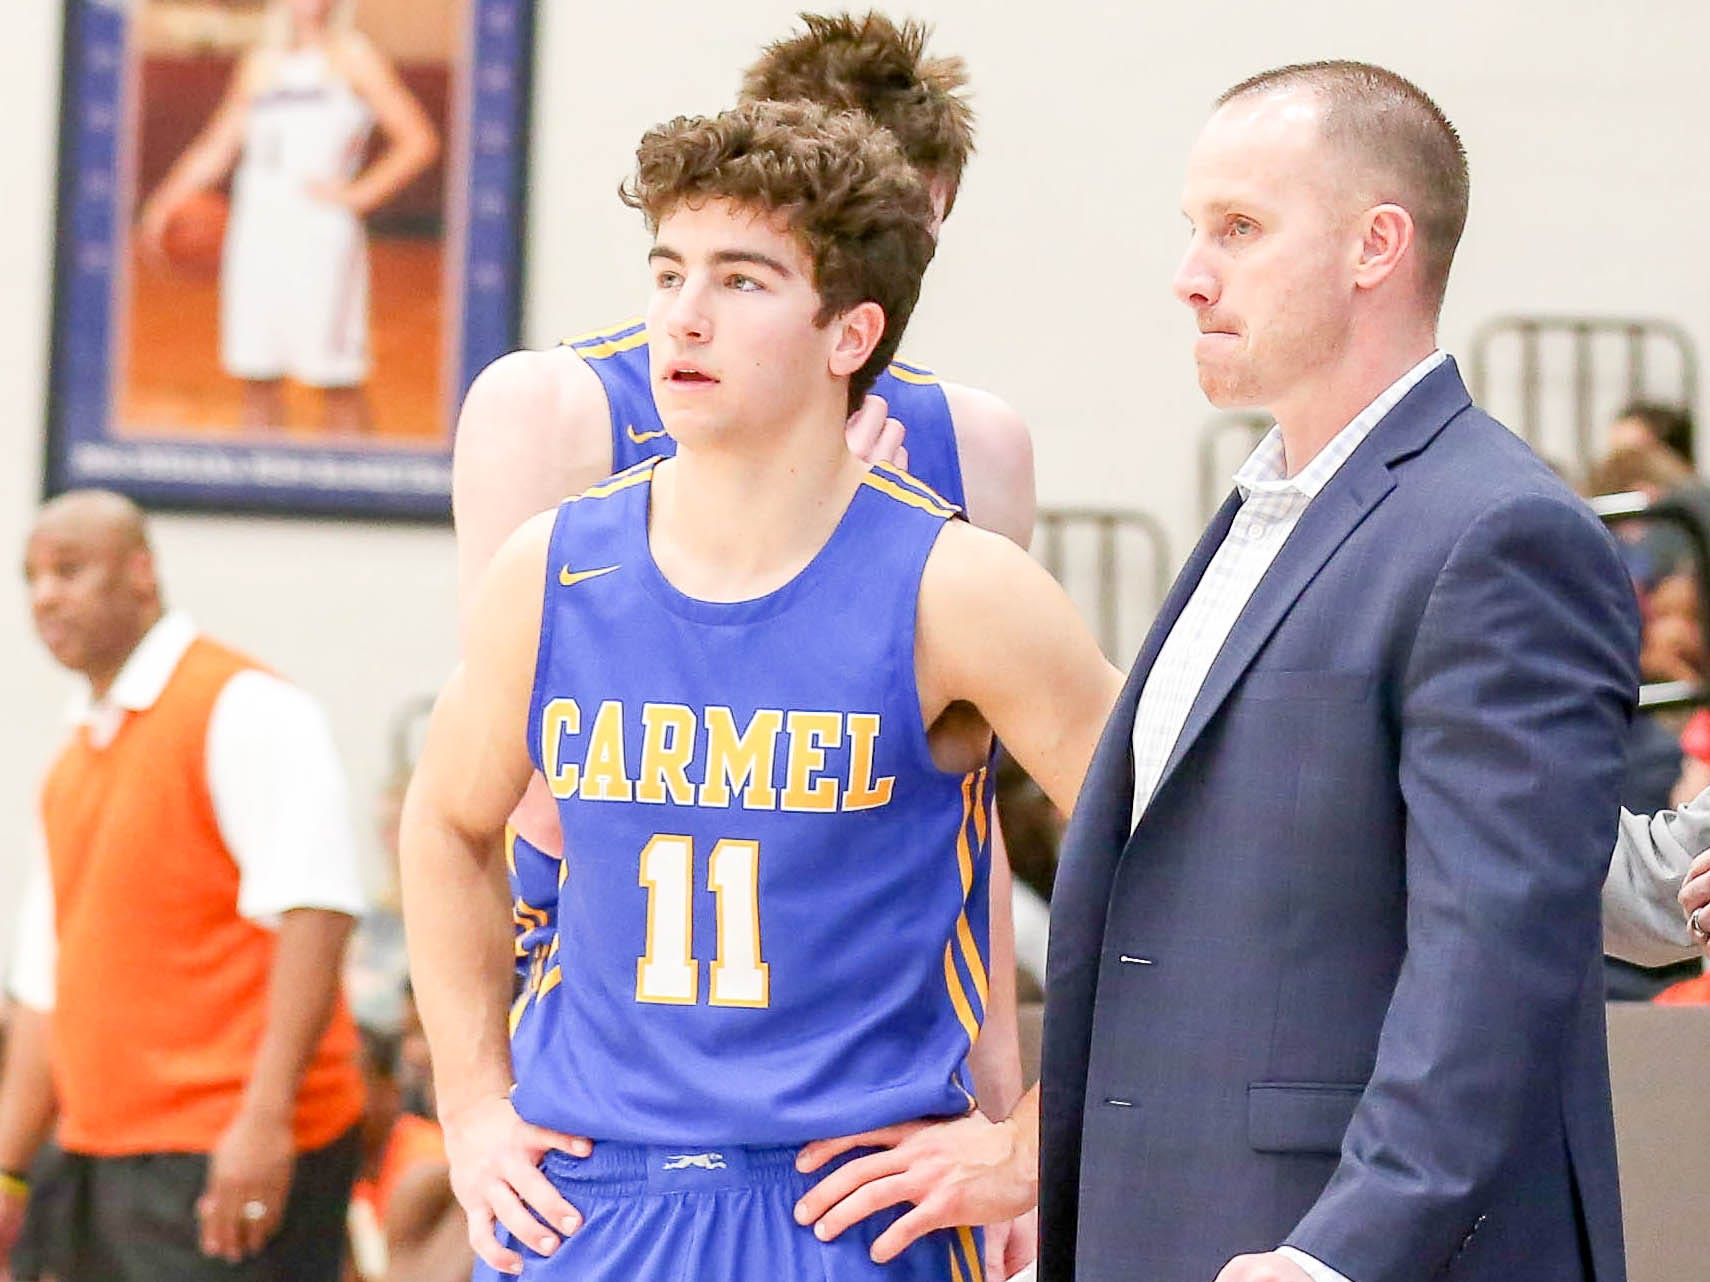 Carmel's Luke Heady (11) getting some instructions on the sidelines during the second half of Carmel vs. Fort Wayne Northrop High School in the IHSAA Varsity Boys Regional Semifinals held at Logansport High School, March 9, 2019.